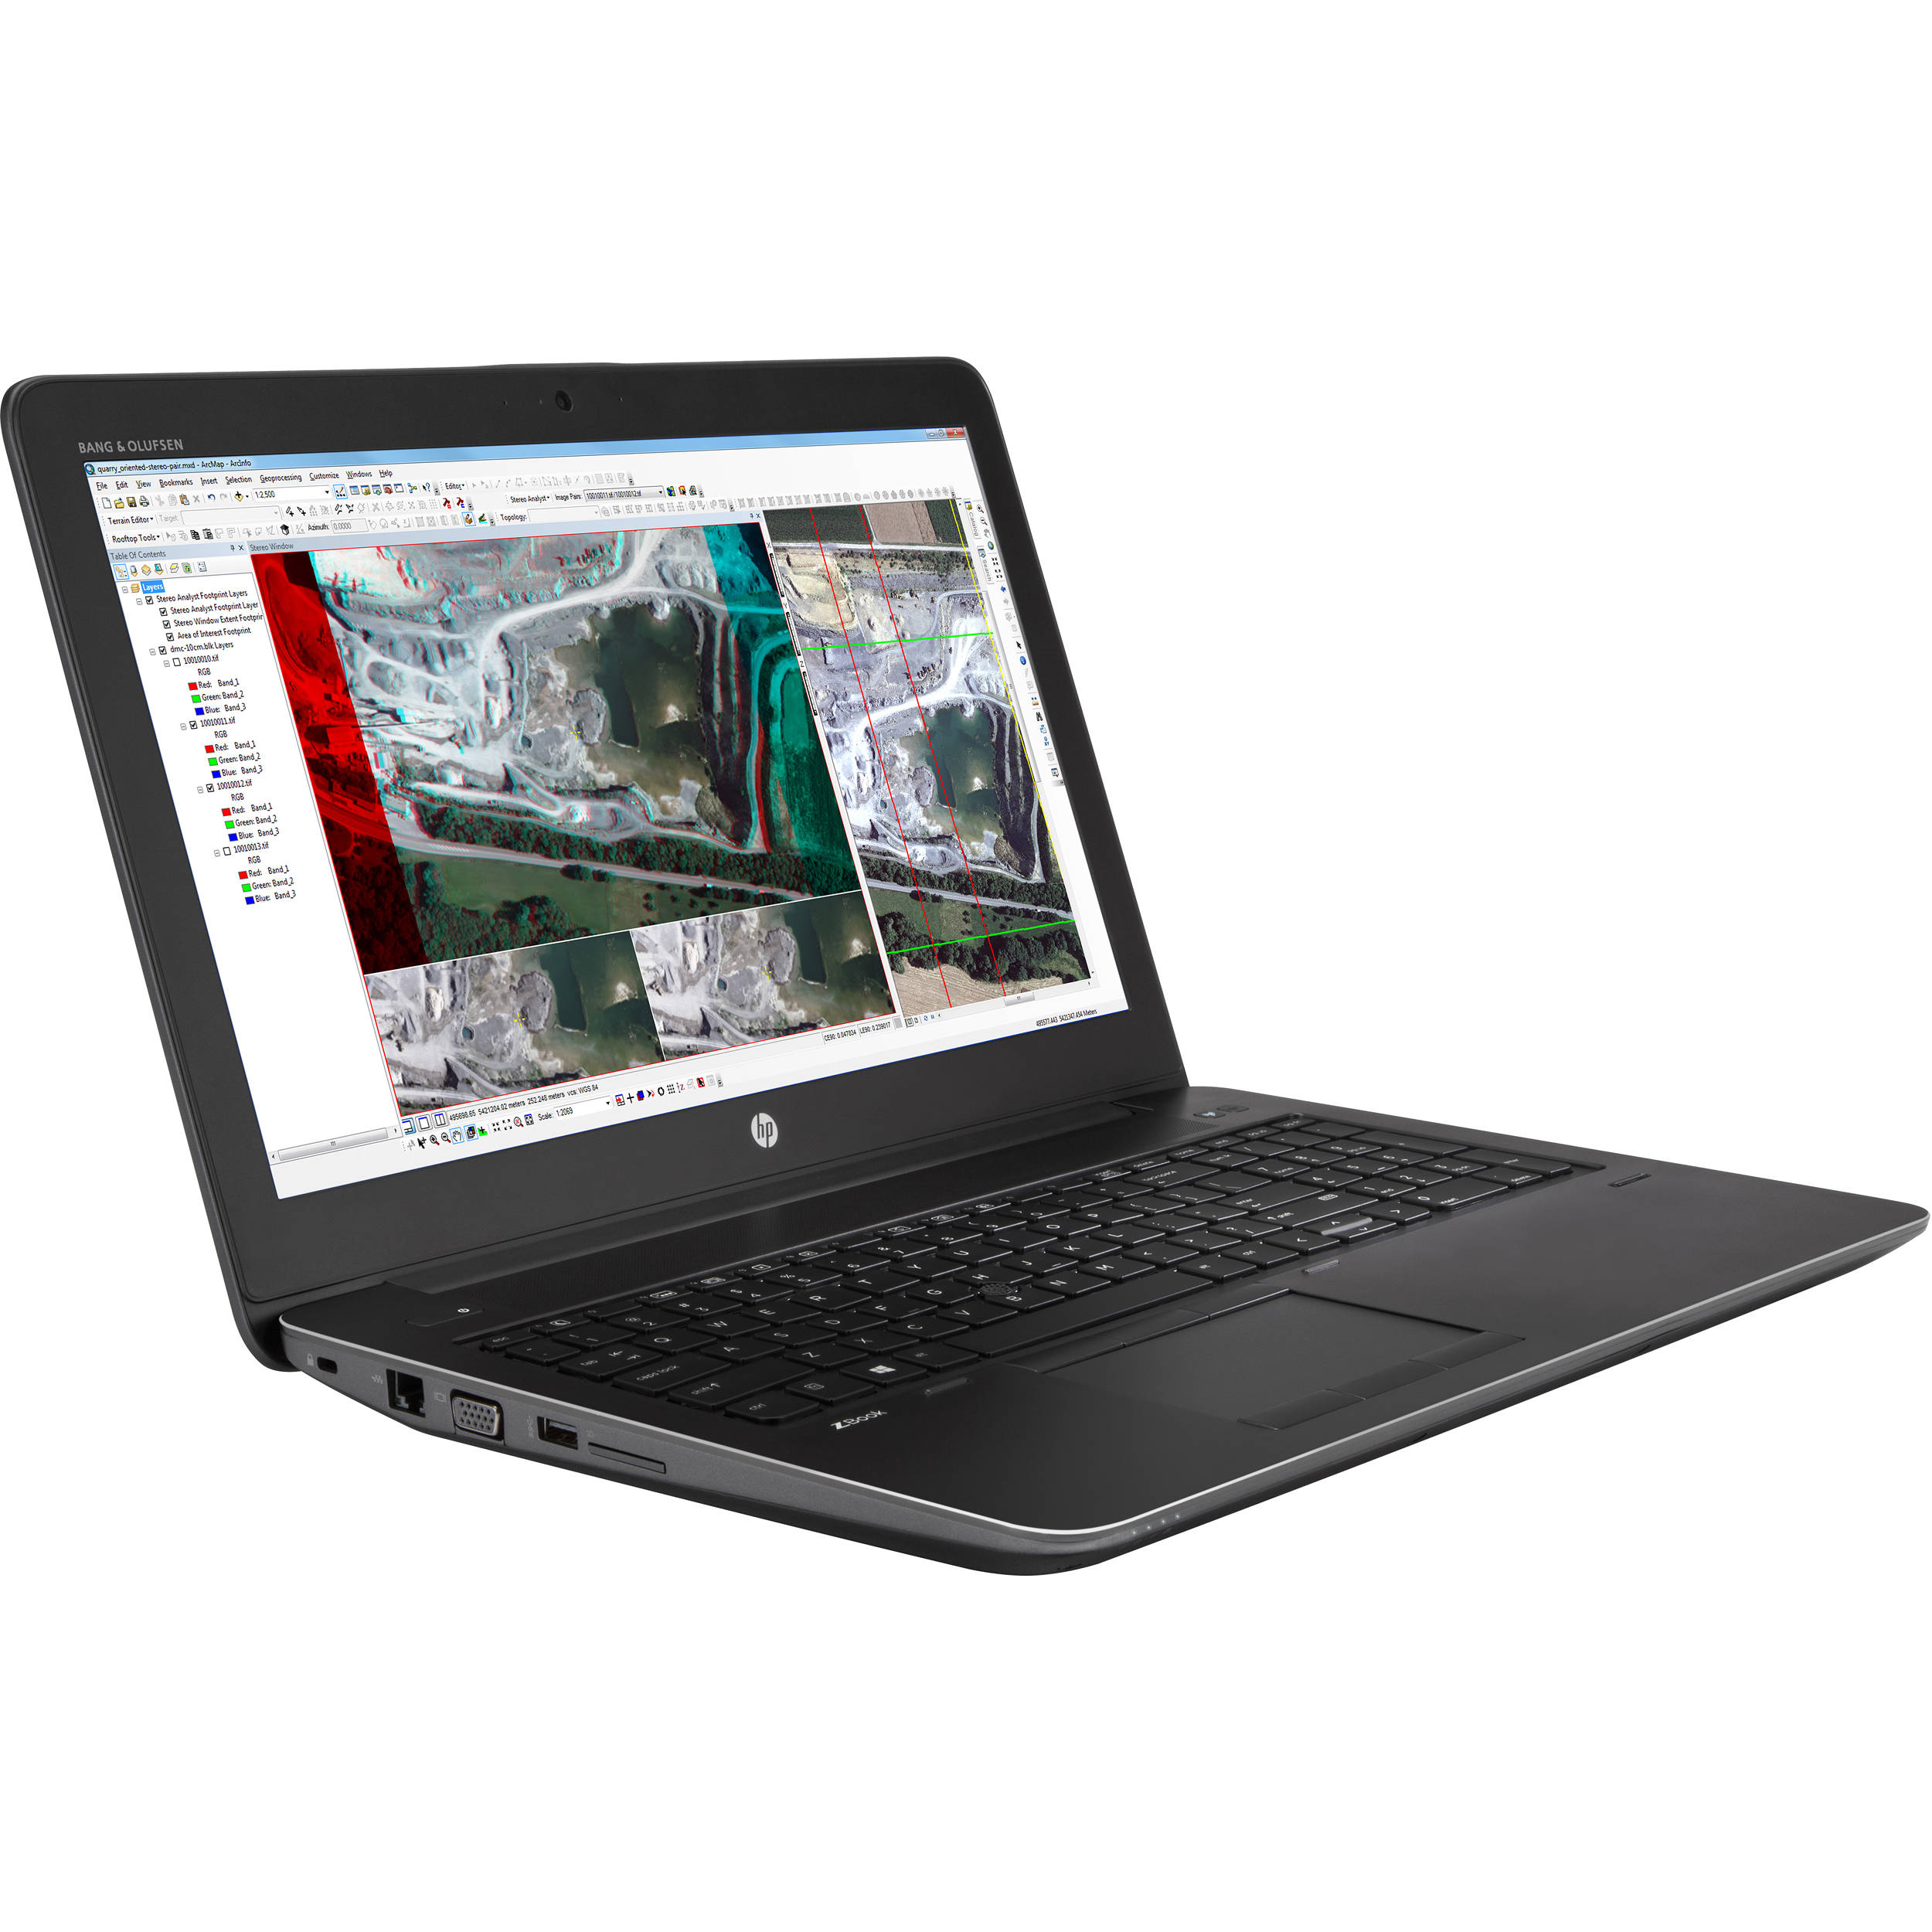 HP EliteBook 8540w Mobile Workstation Infineon Drivers for Windows Mac